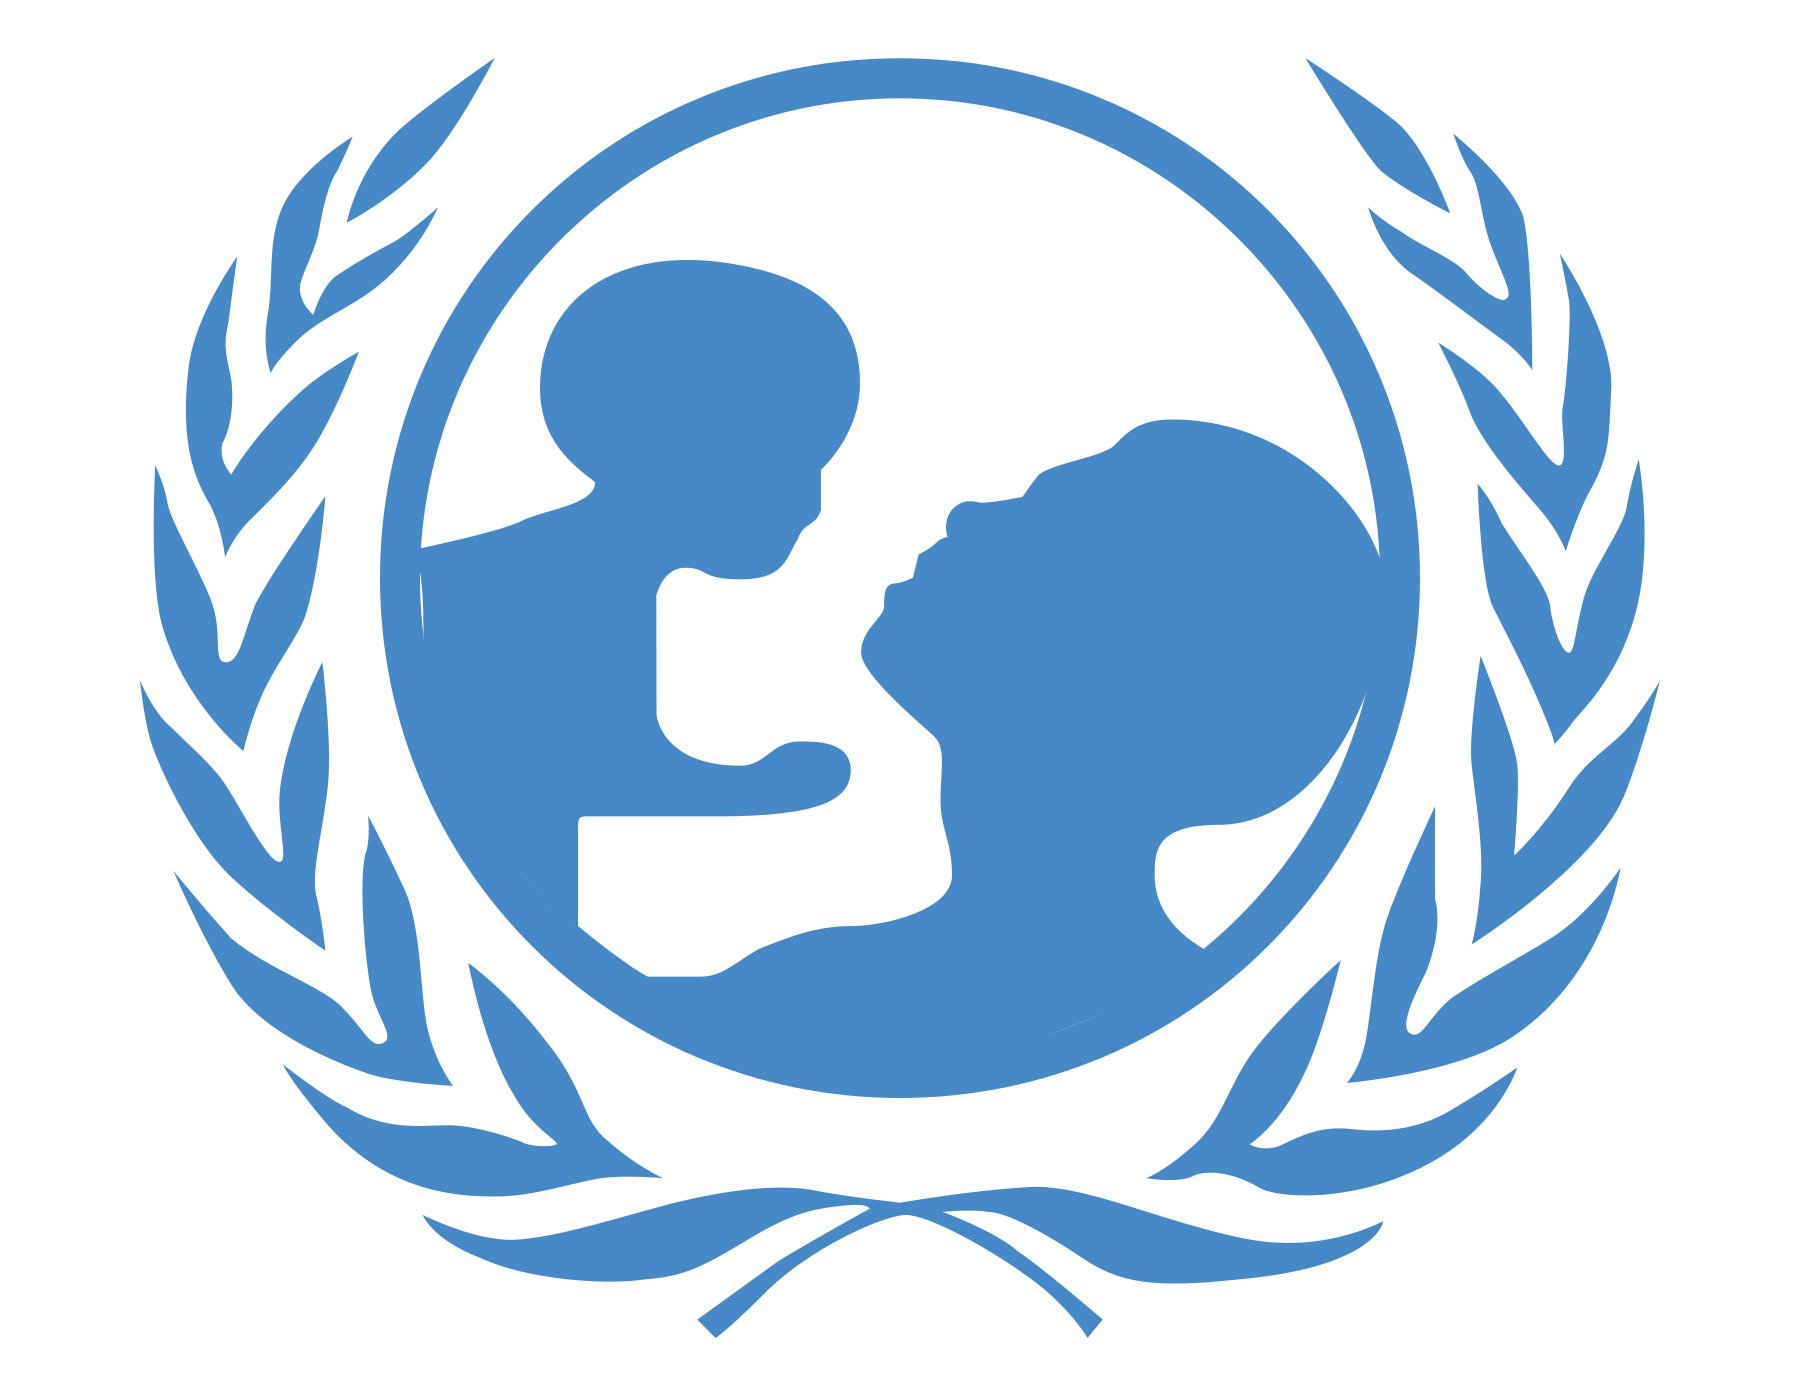 Unicef Logo Unicef Symbol Meaning History And Evolution